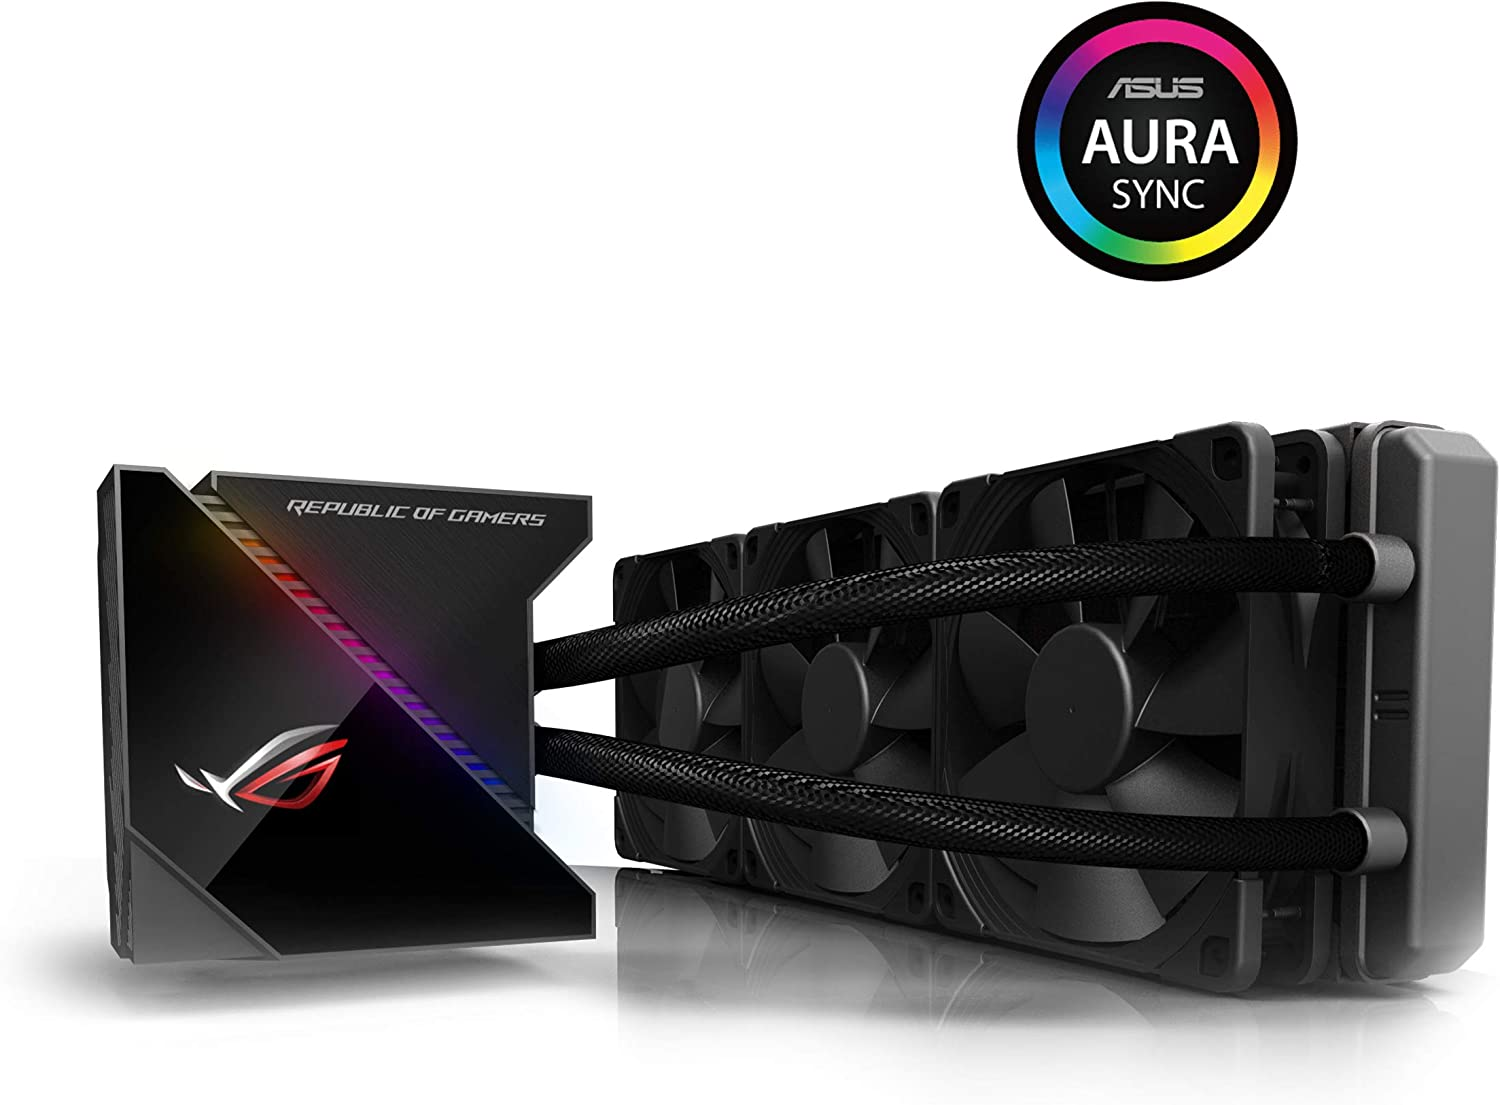 ASUS 90RC0020-M0UAY0 ROG Ryujin 360 All-in-One Liquid CPU Cooler - Black